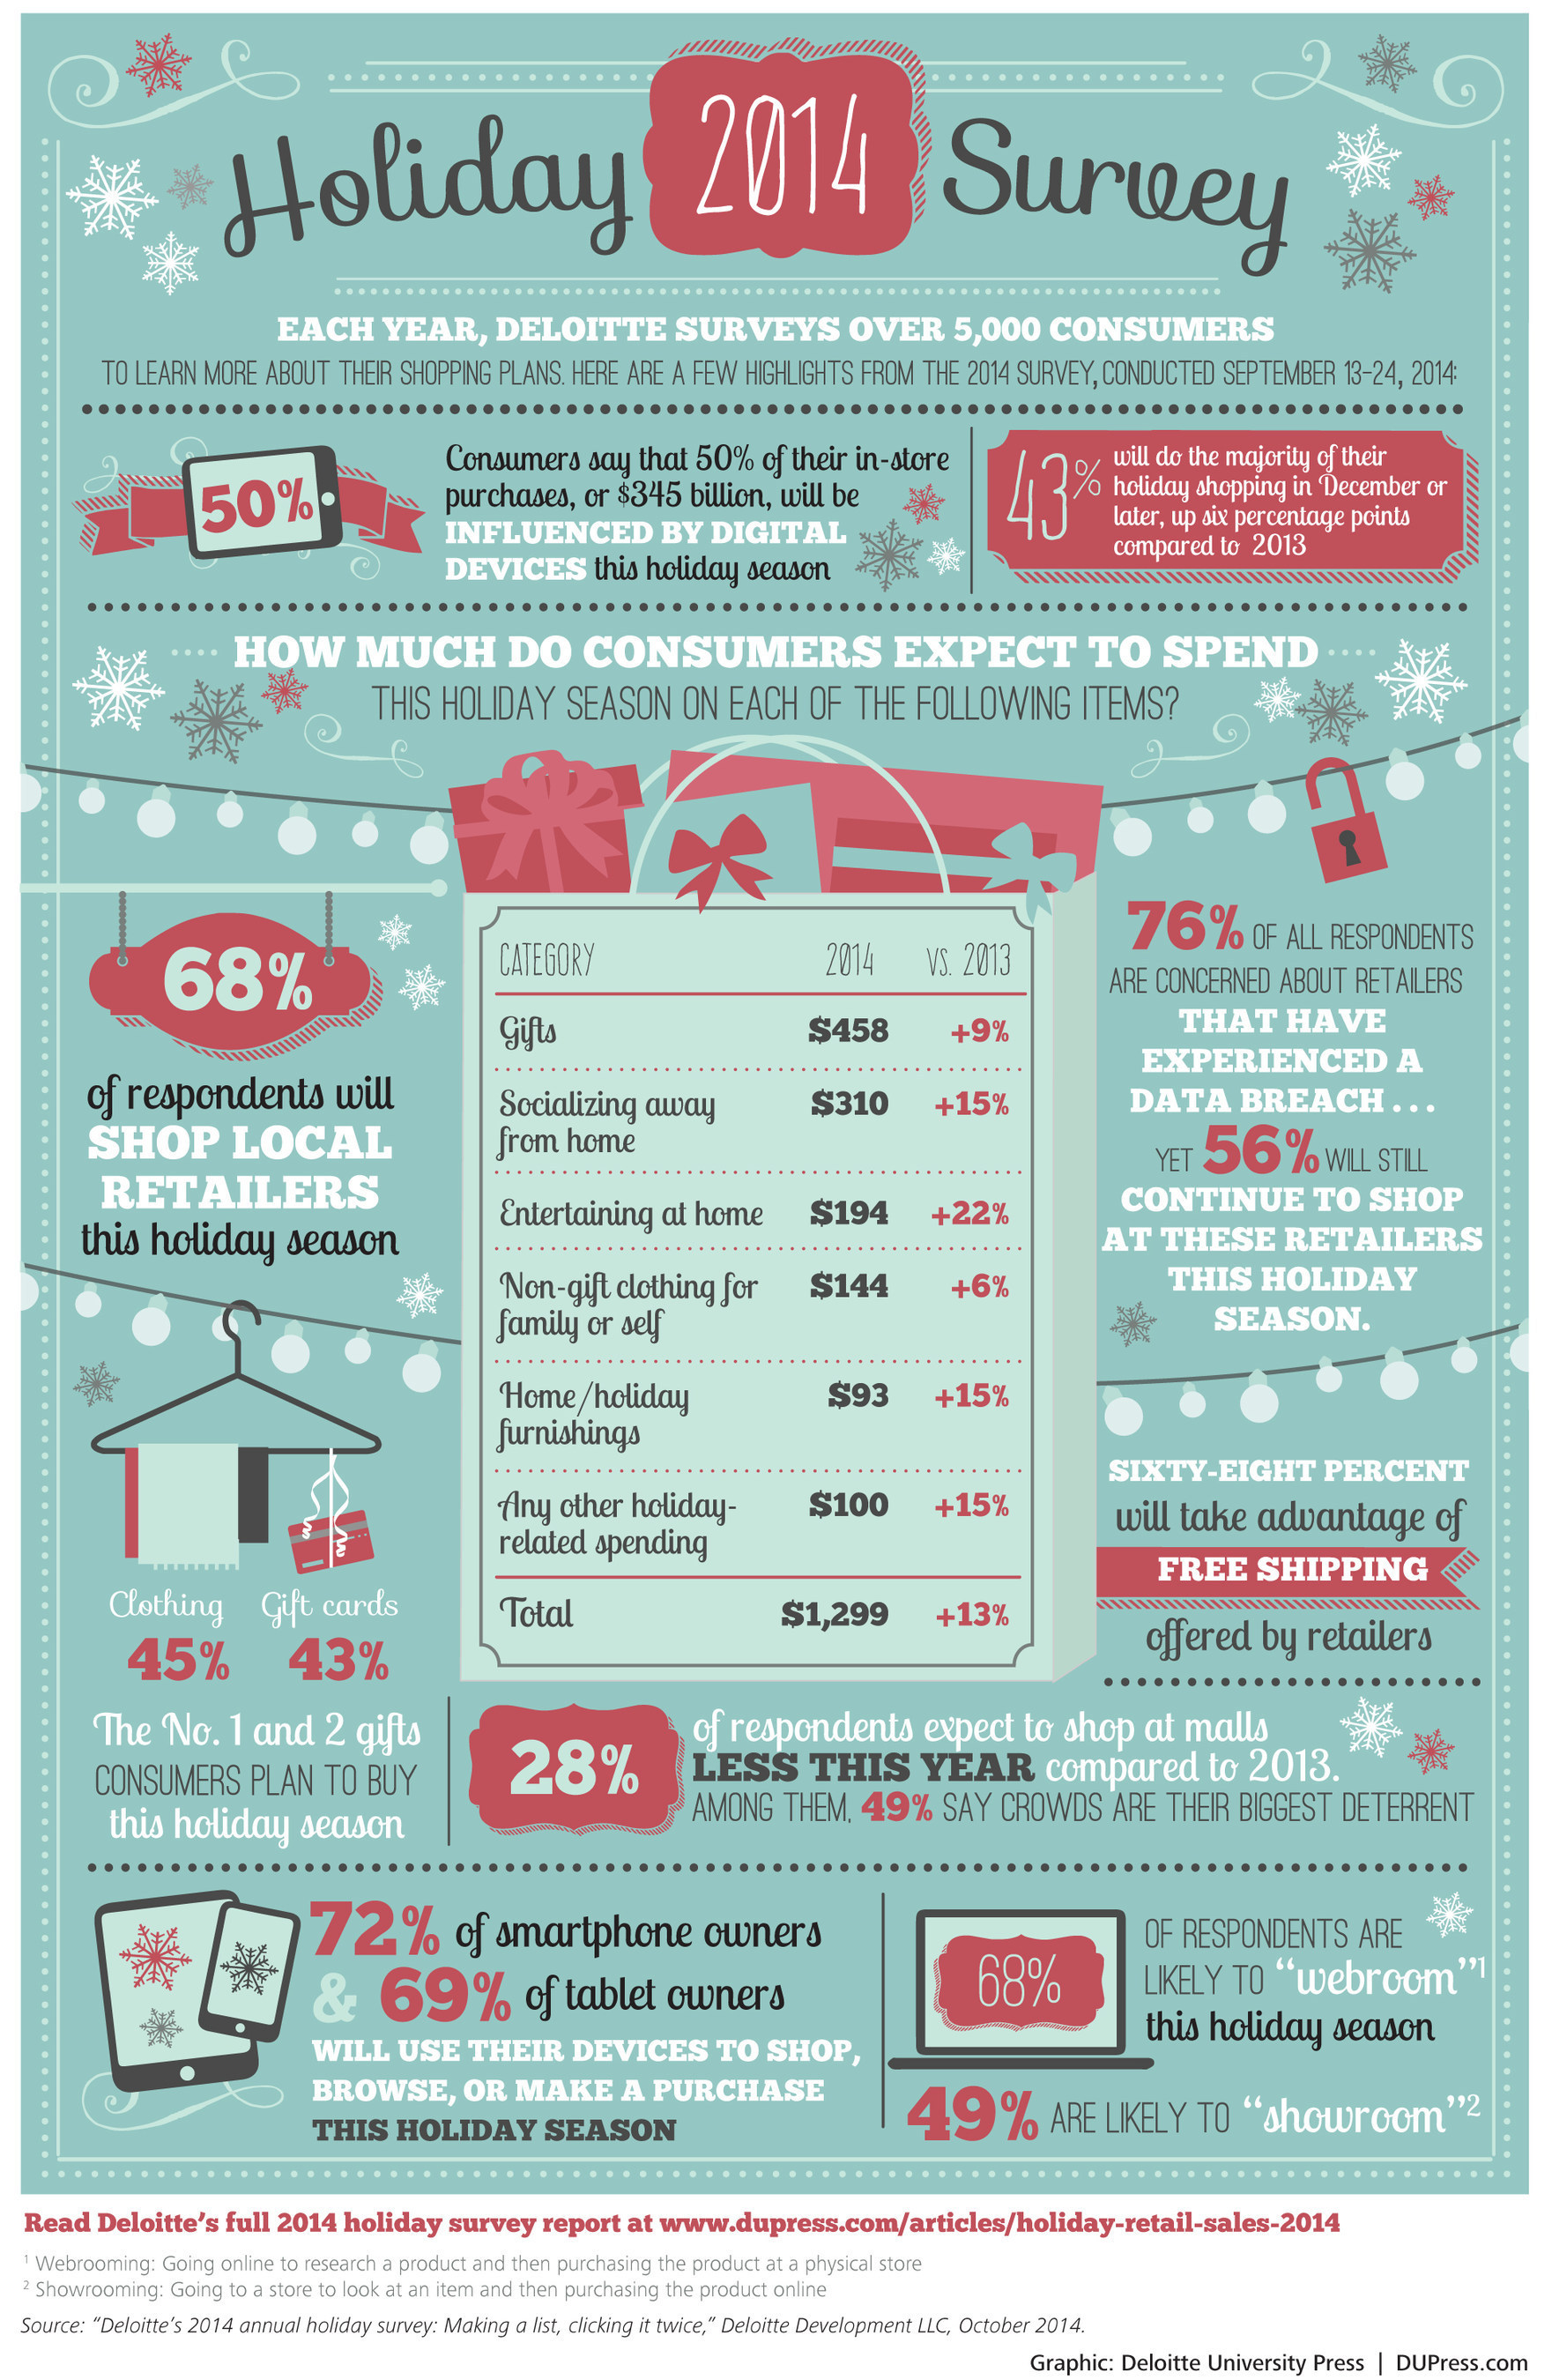 Deloitte 2014 Holiday Shopping Survey